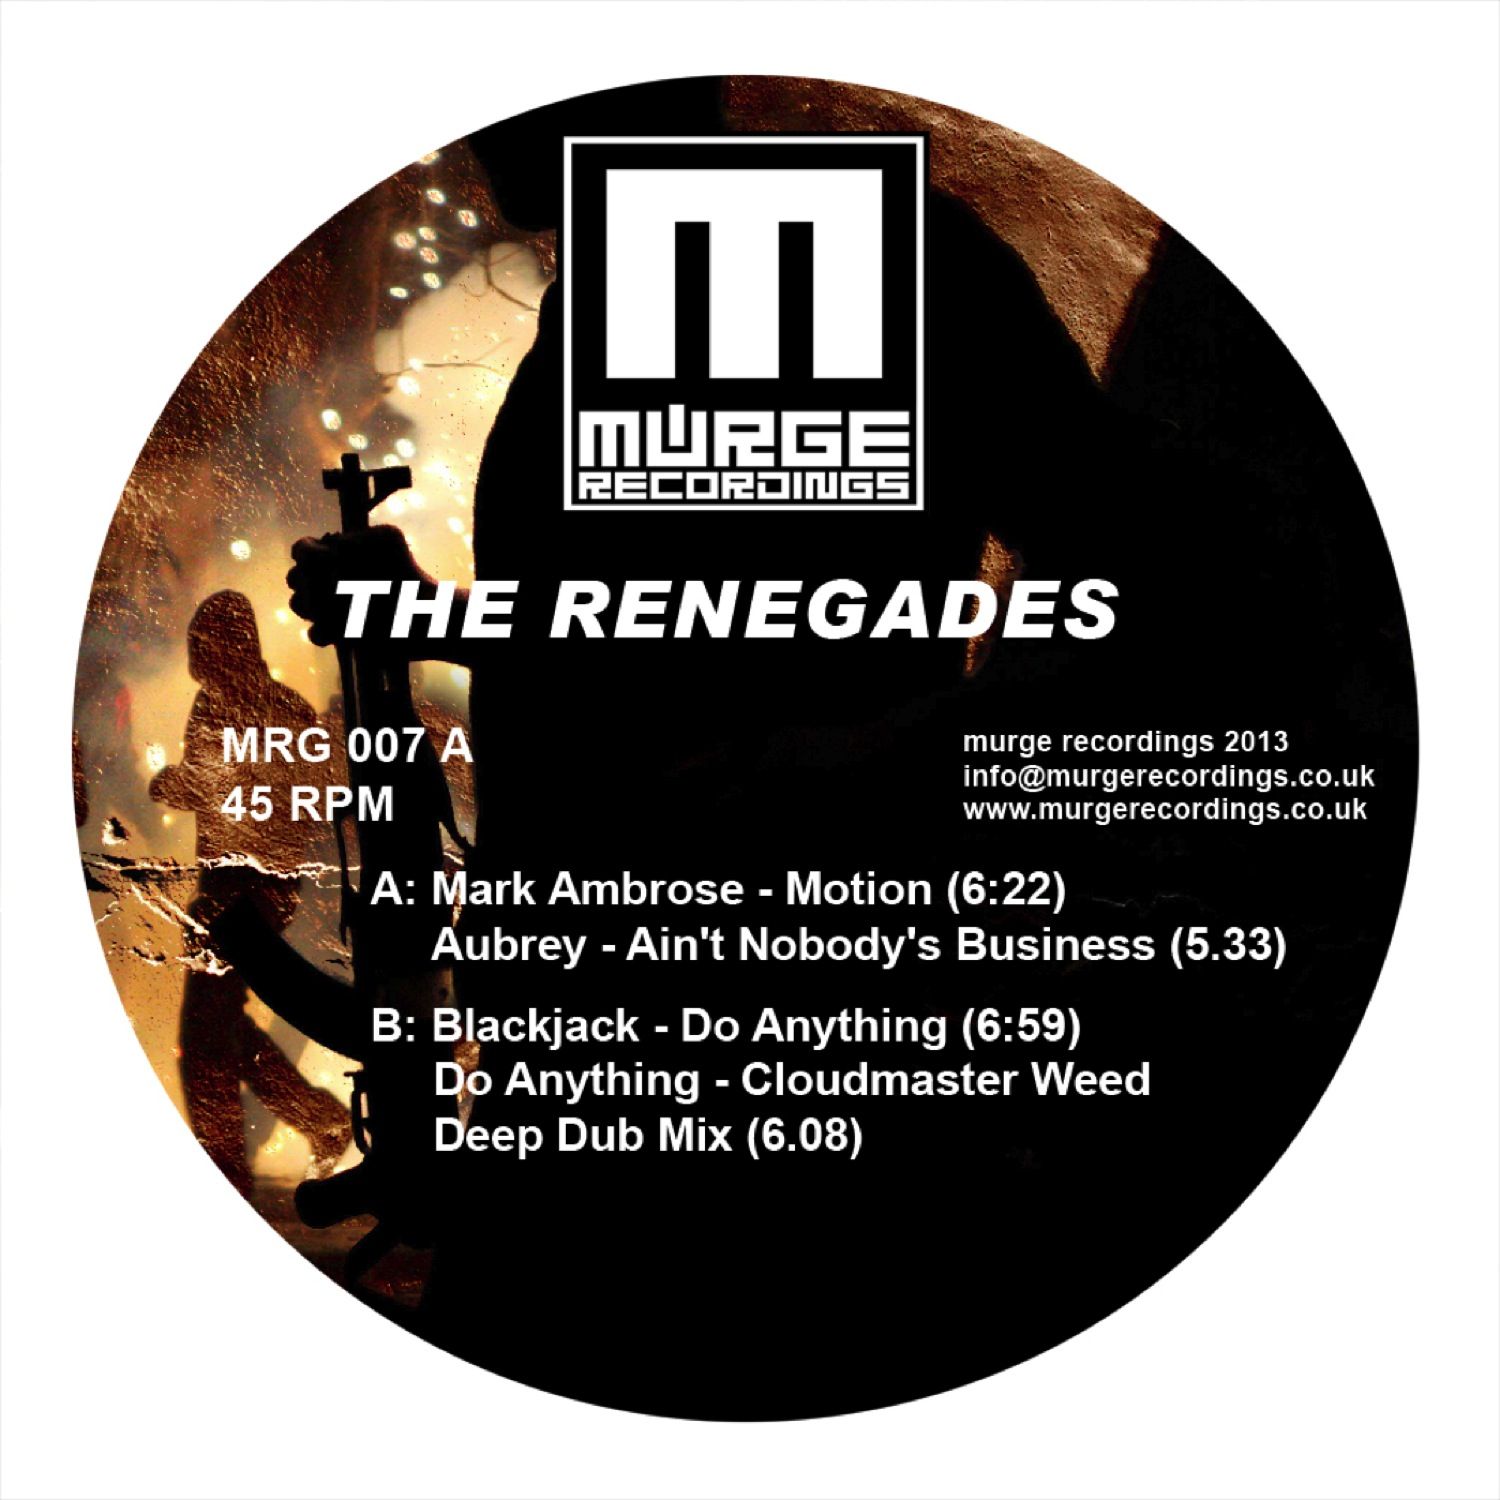 Murge Recordings007 - The Renegades - Various Artists 1400 pxl